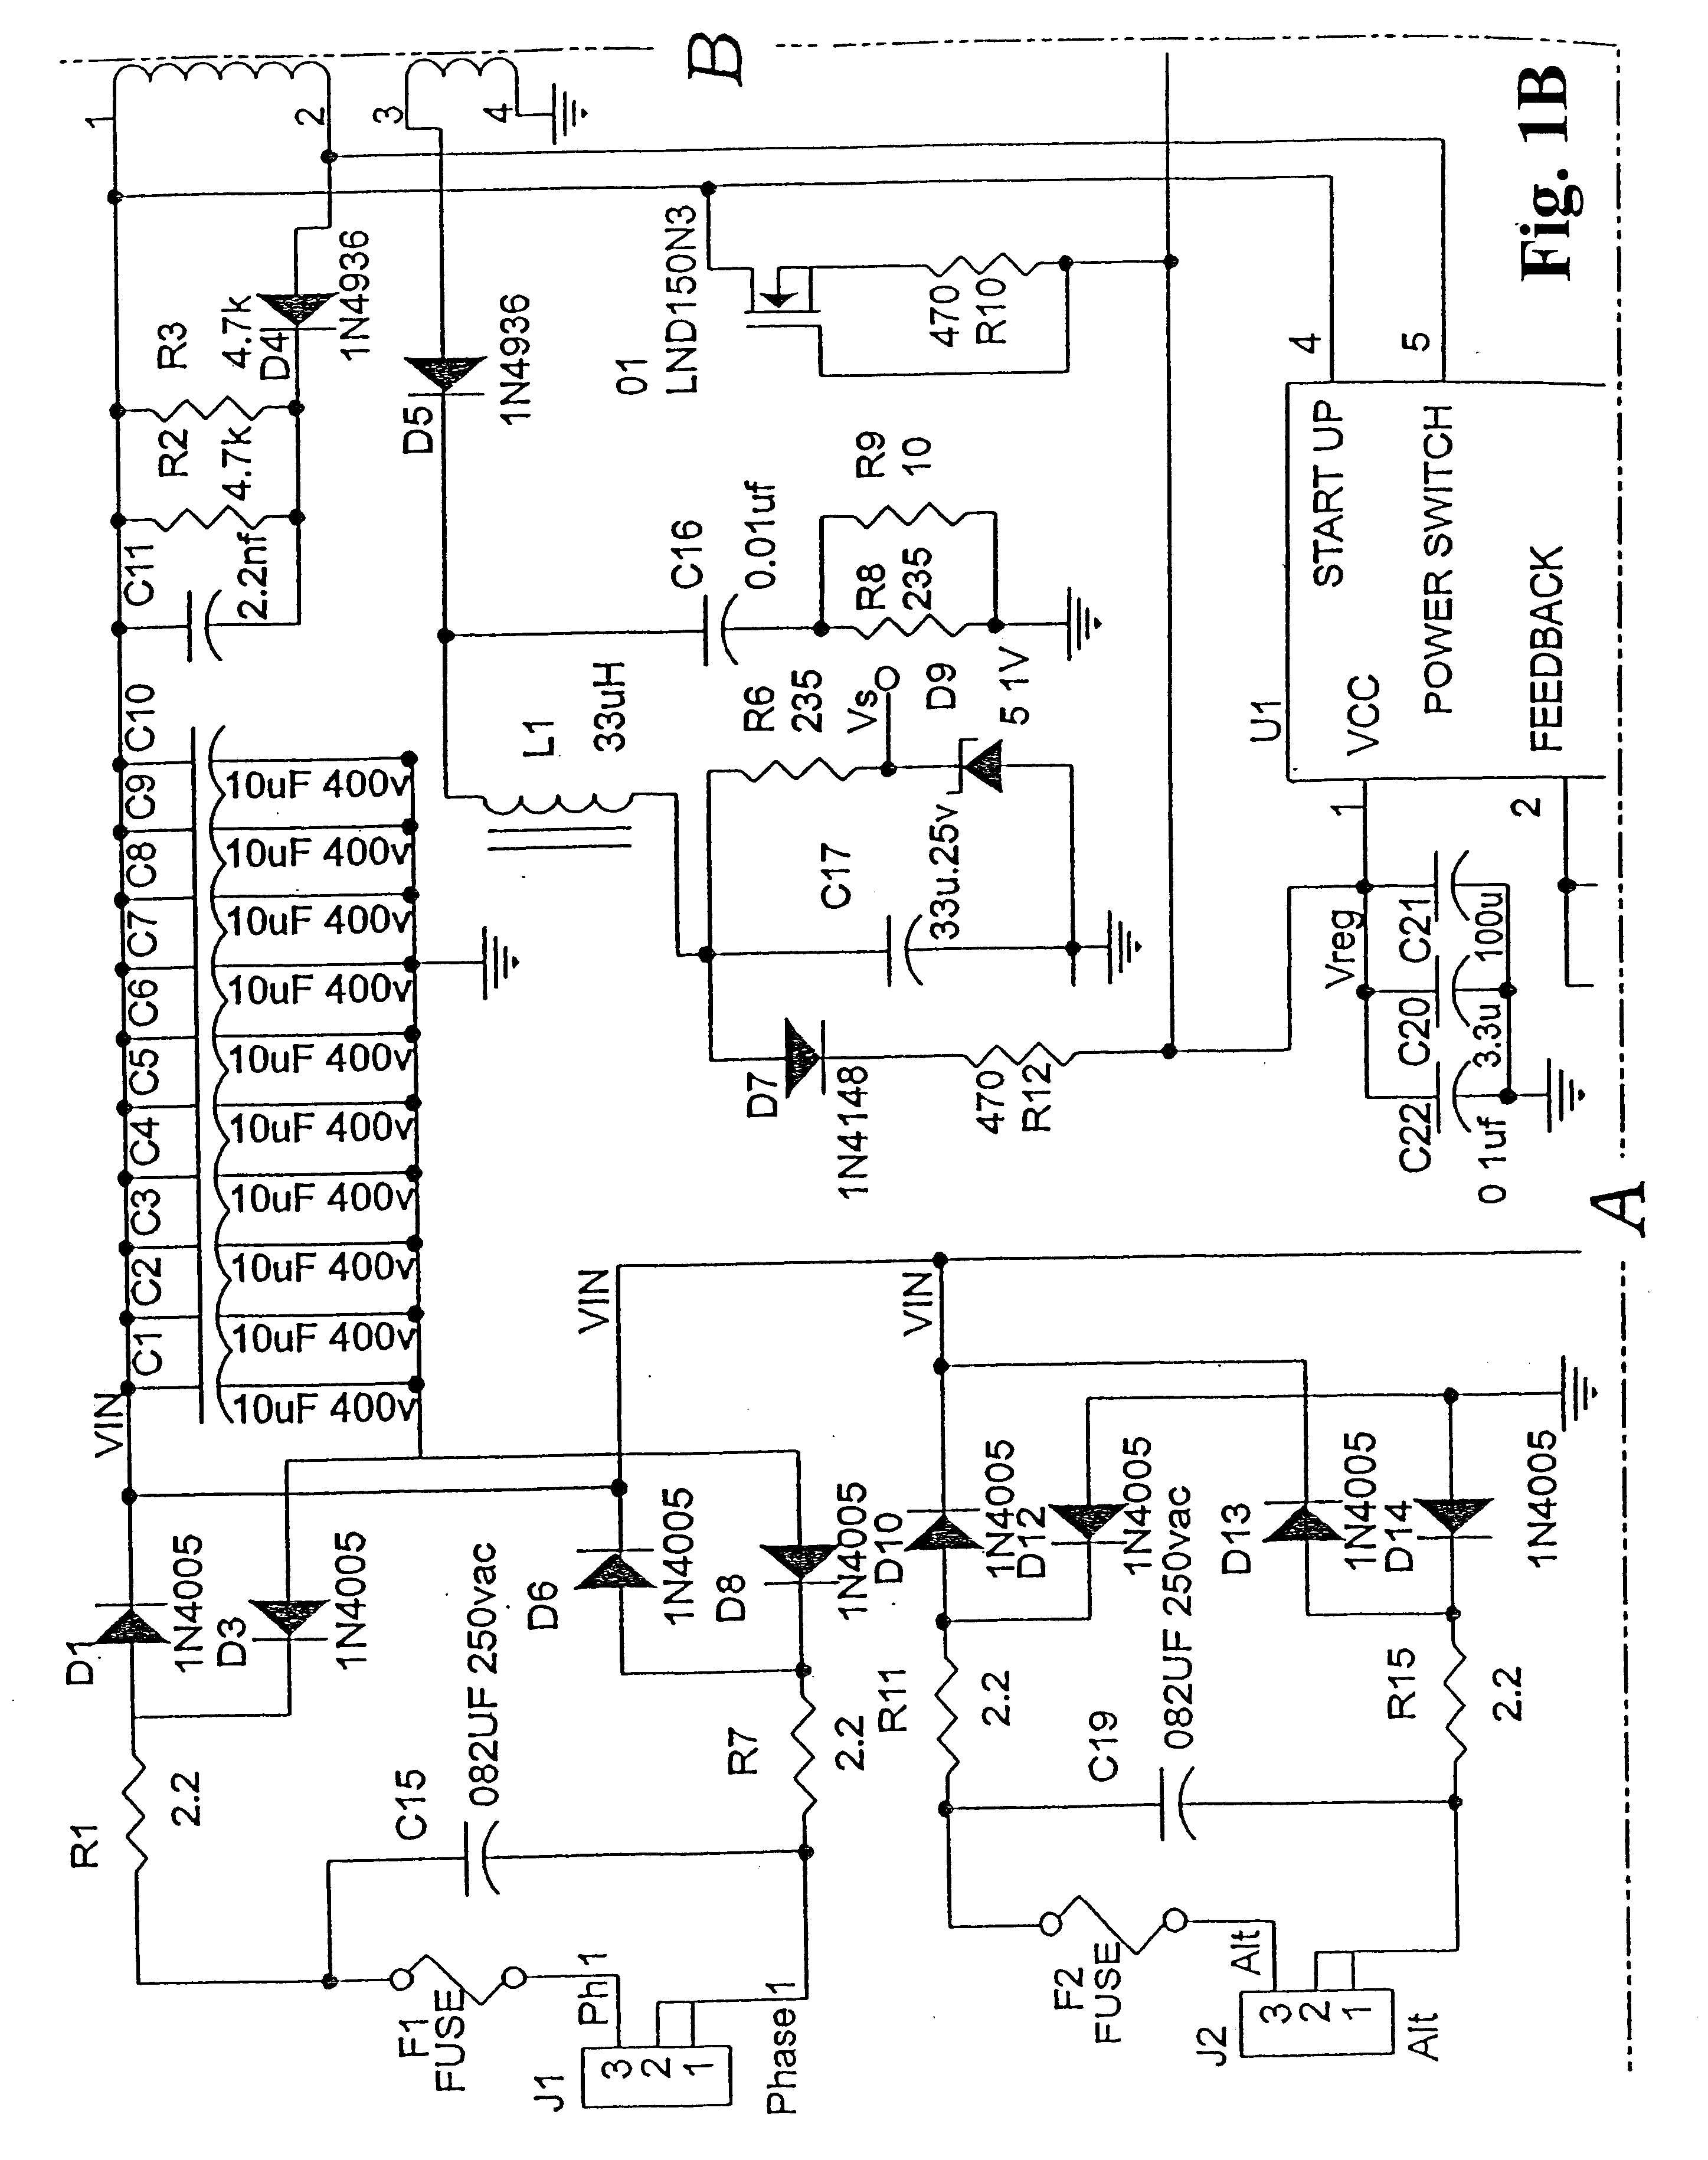 cruise control wiring diagram chevrolet patent us6715586 - upgraded elevator control circuit and ... elevator control wiring diagram